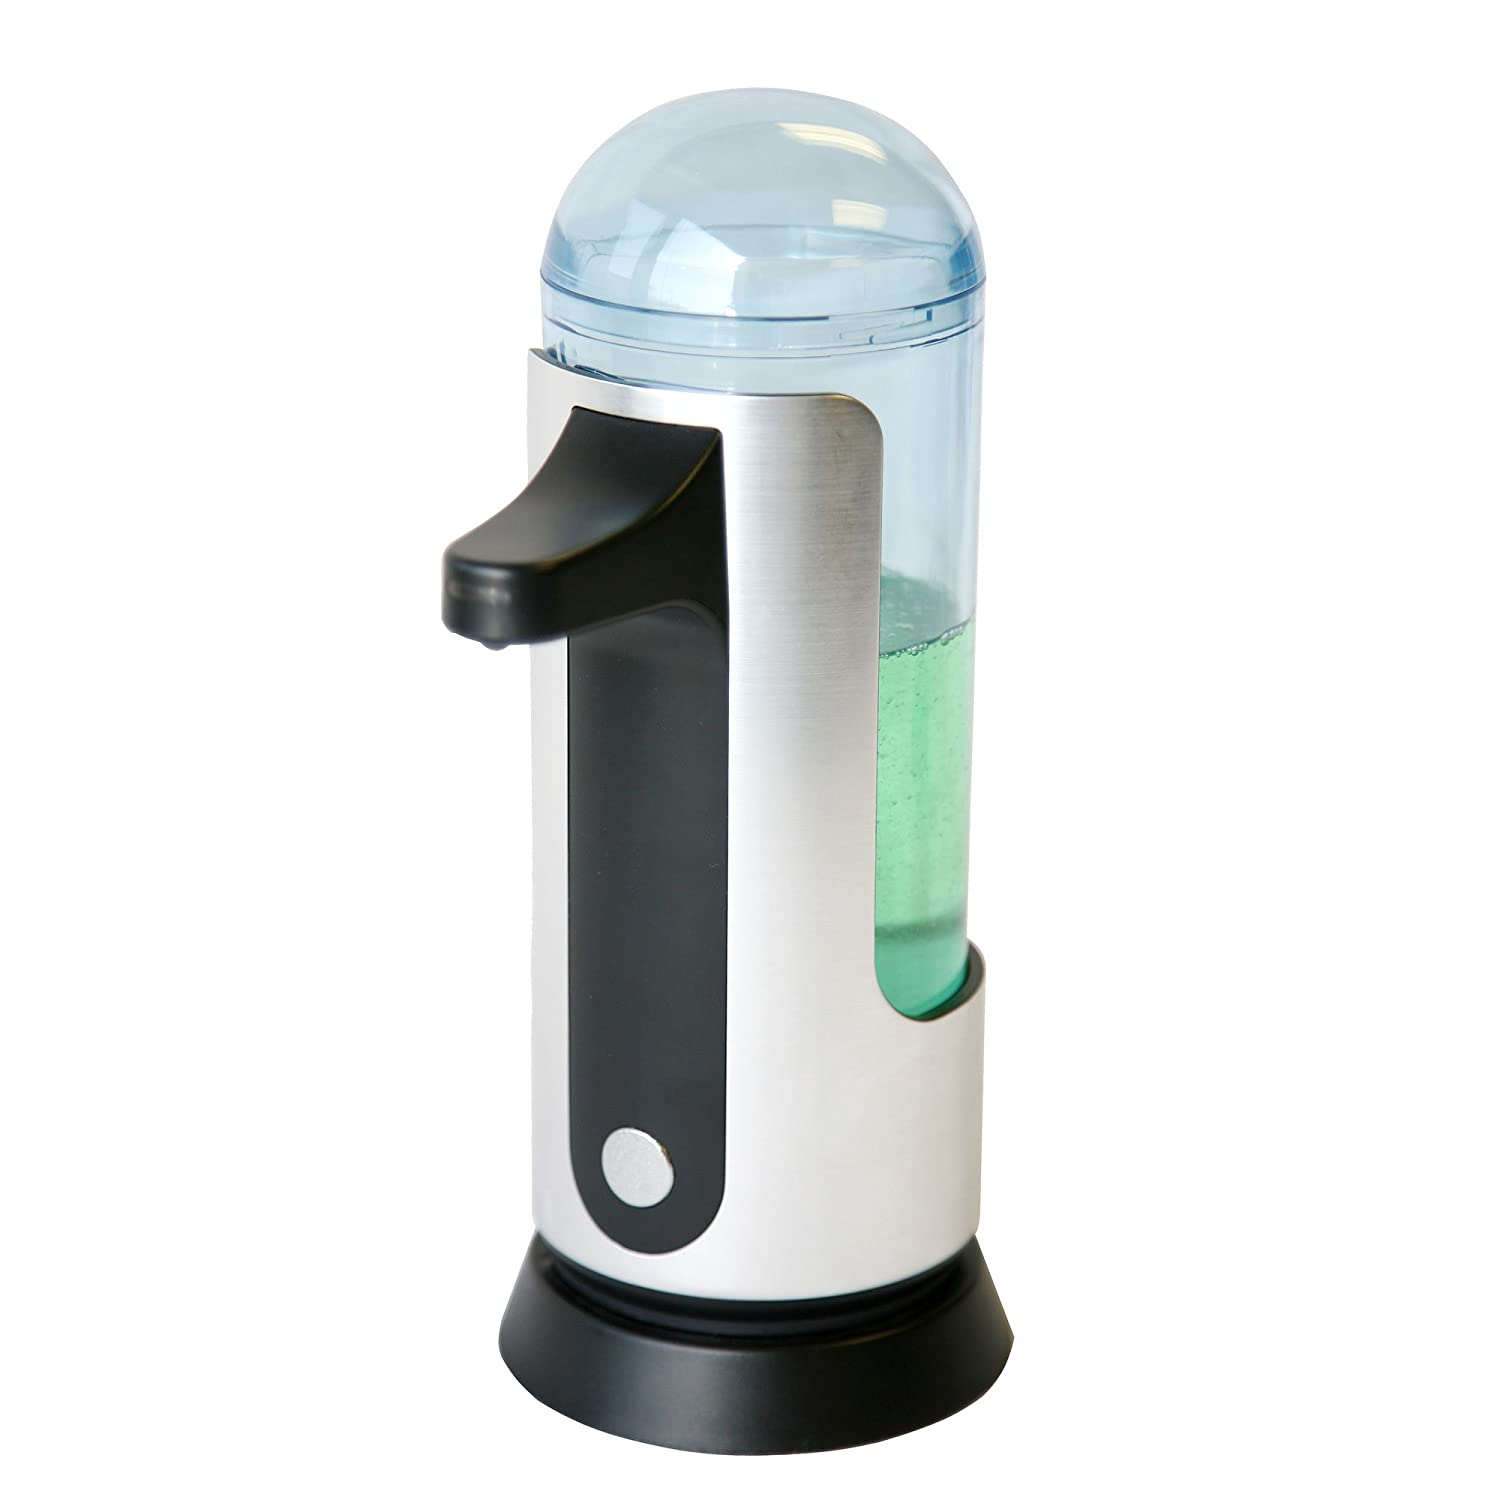 iTouchless 16oz Automatic Sensor Soap Dispenser with Removable 3D Container iTouchless Housewares /& Products Inc ESD003D